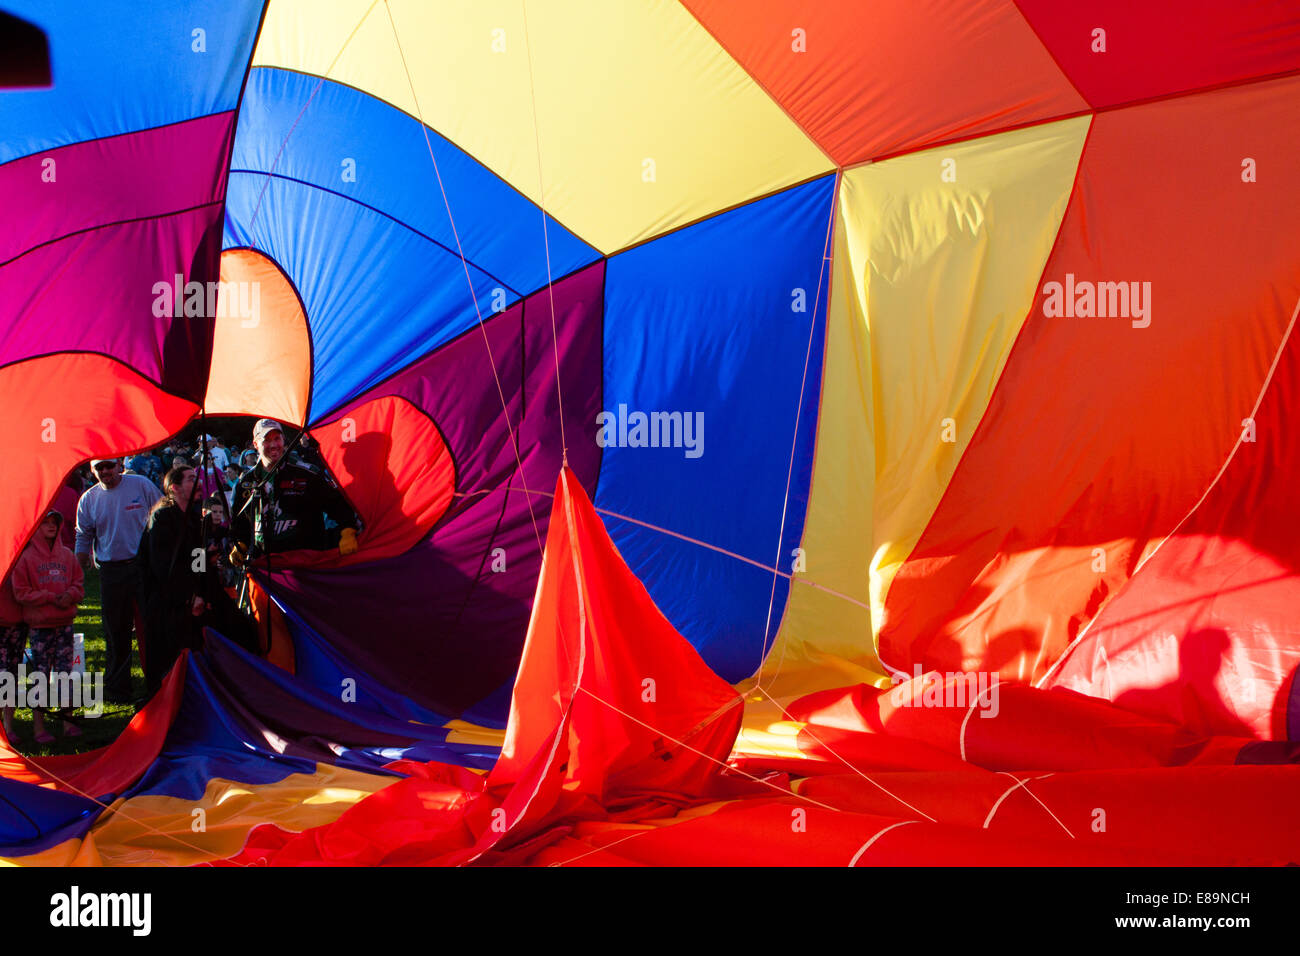 View from inside a partially inflated balloon canopy being collapsed for storage Stock Photo